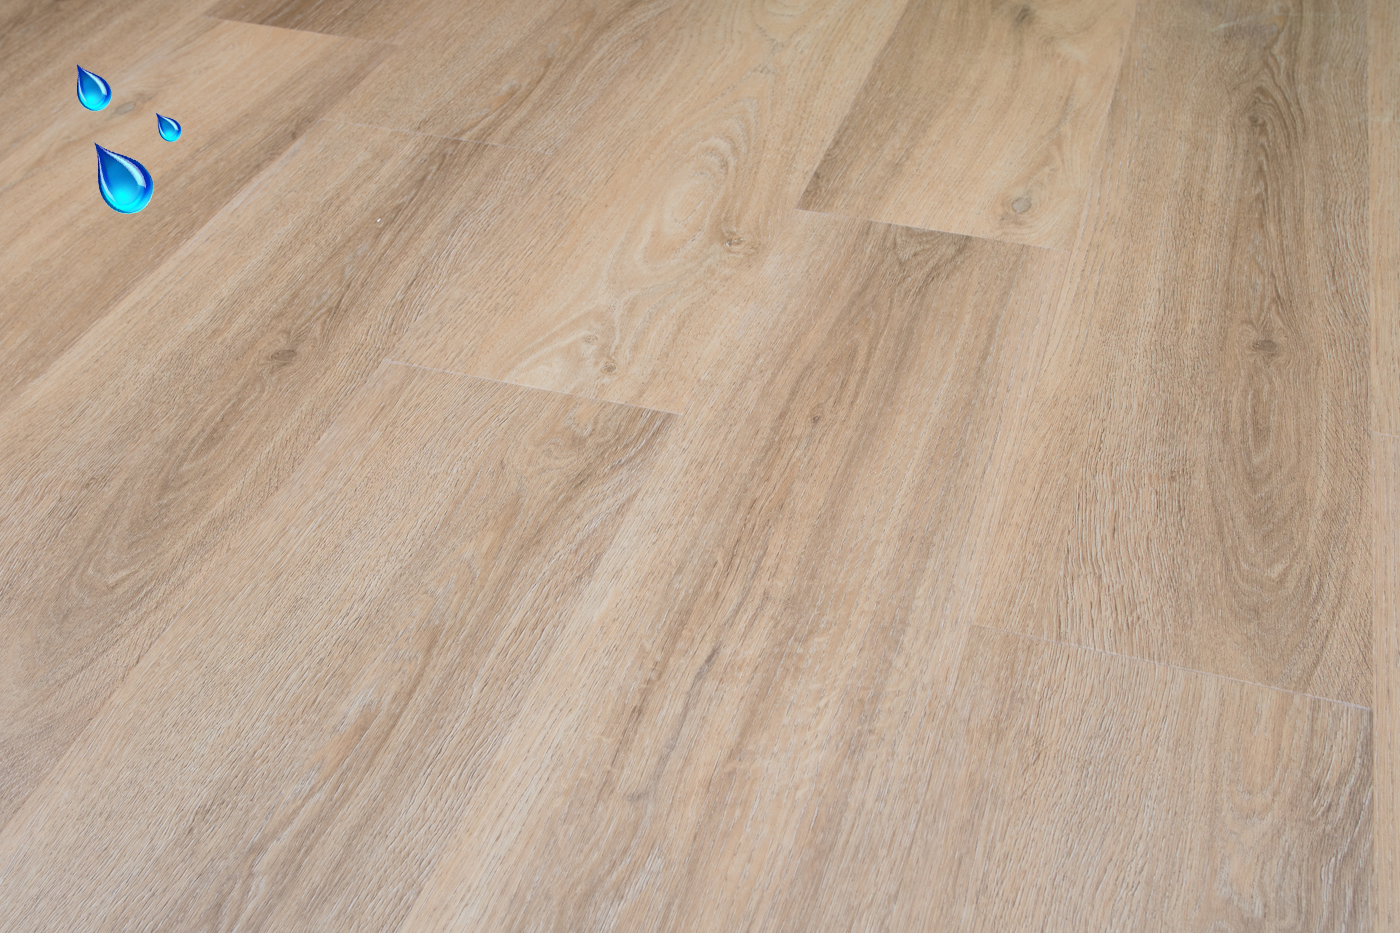 Forest Oak Rigid Vinyl Click Floors Lvt Vinyl Flooring